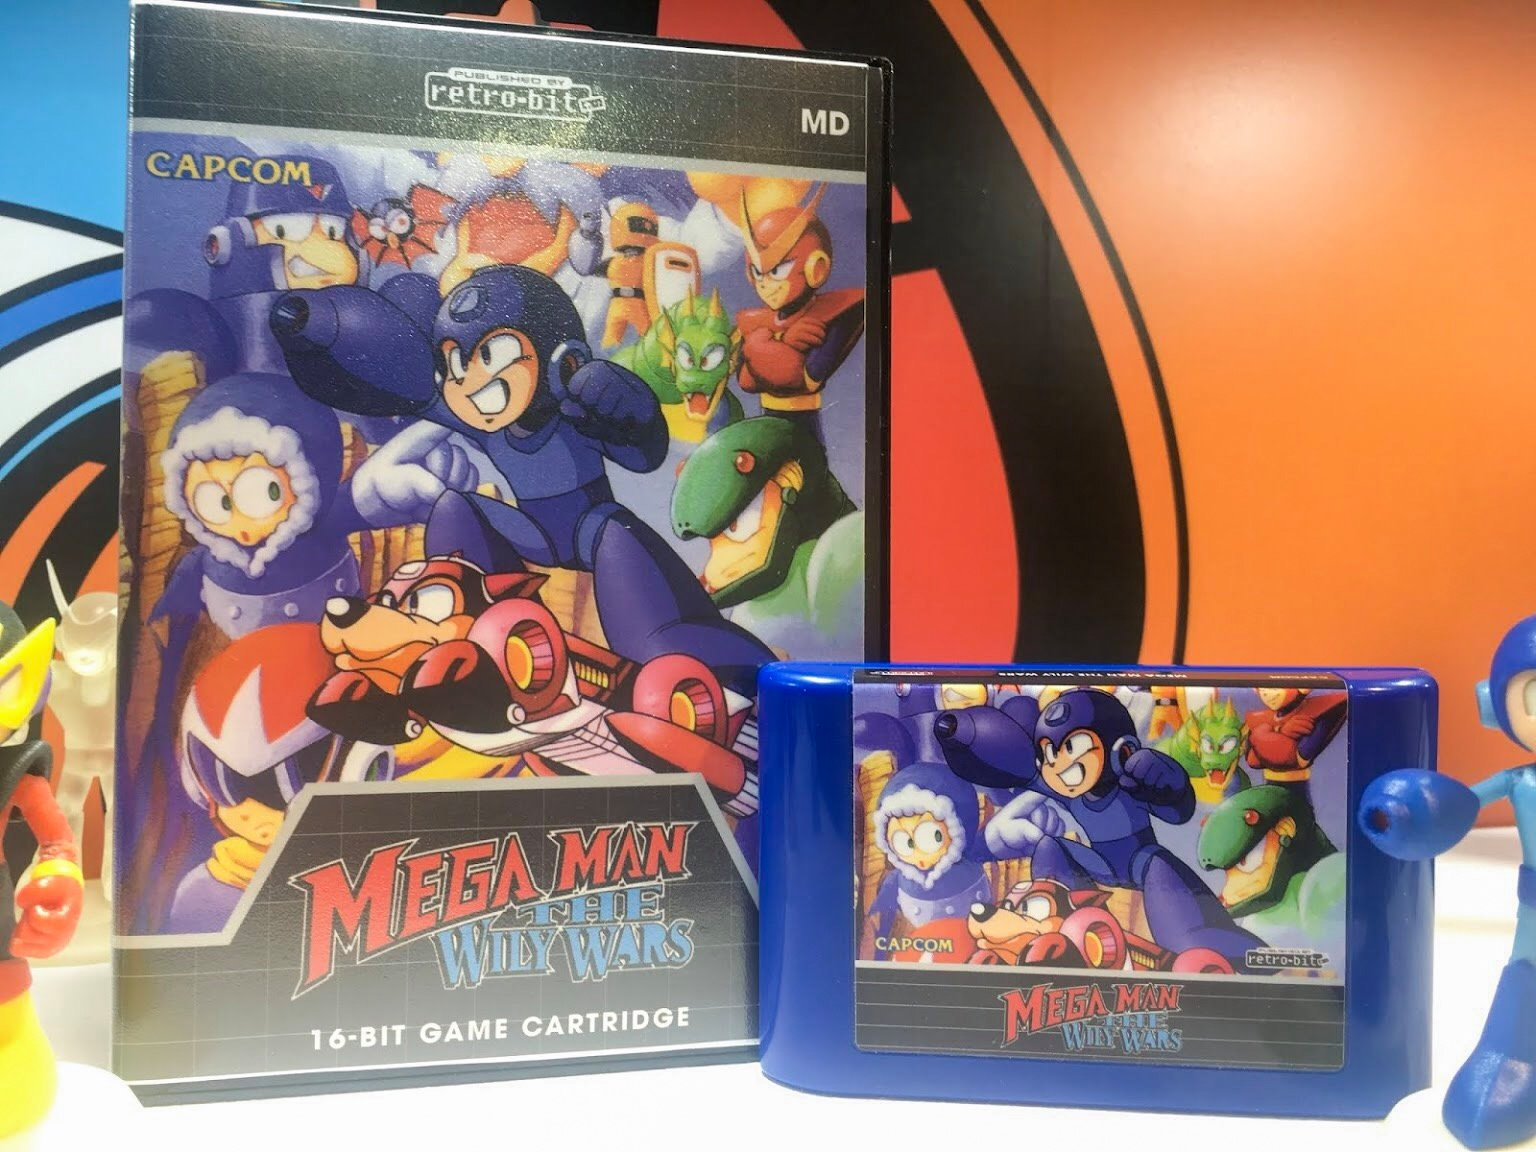 Mega Man: The Wily Wars will Finally get its U.S. Release on the Sega Genesis